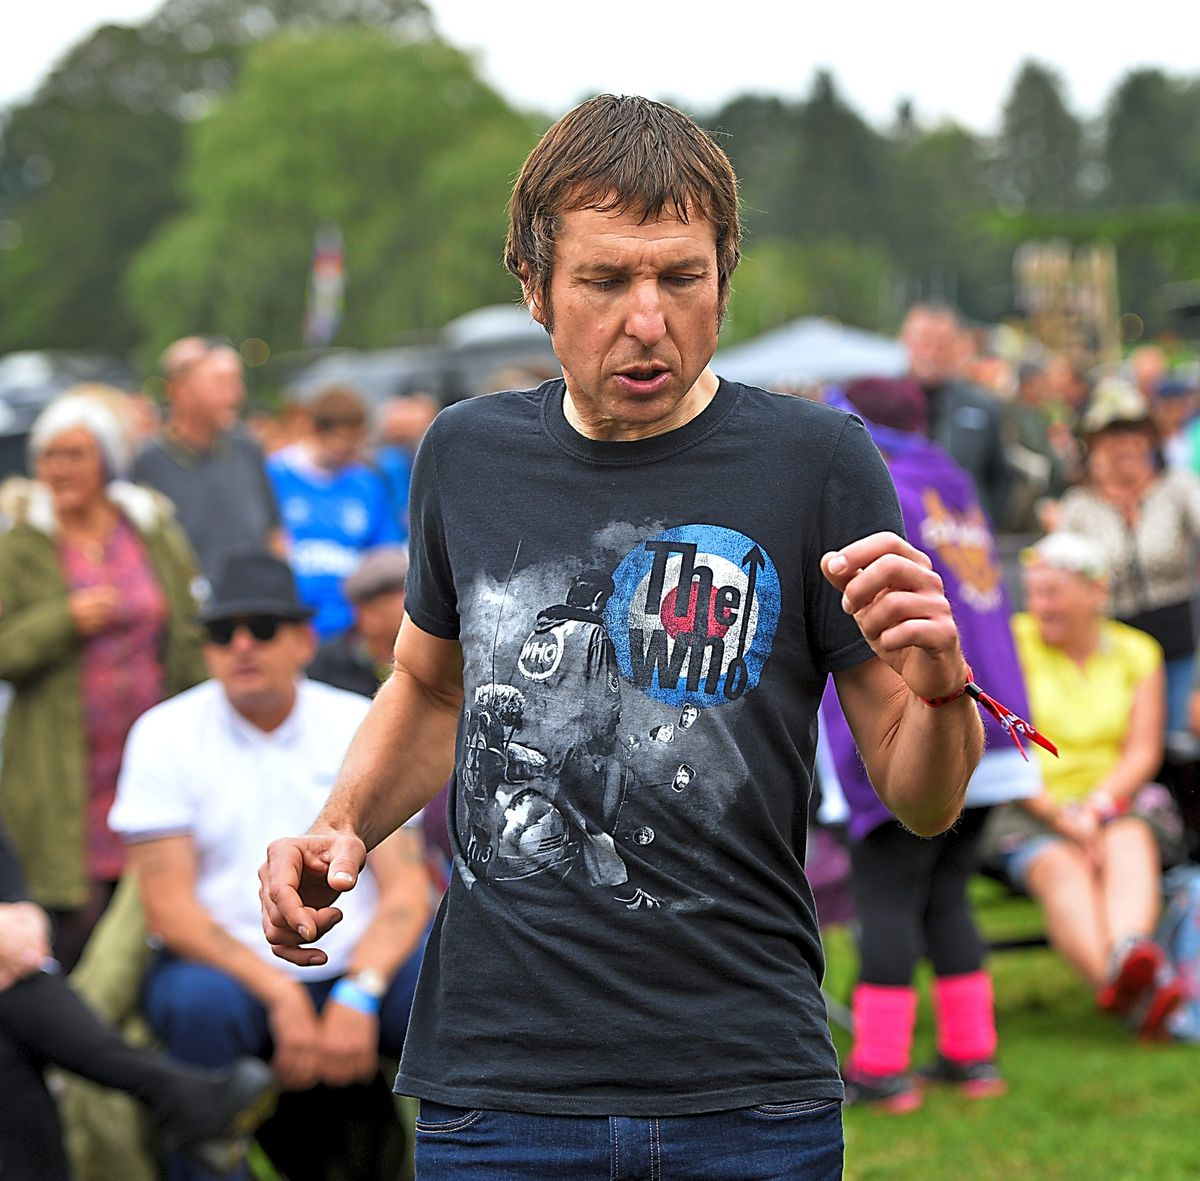 And the good times continued to roll on Sunday as fans turned out to celebrate all things mod at Himley Hall